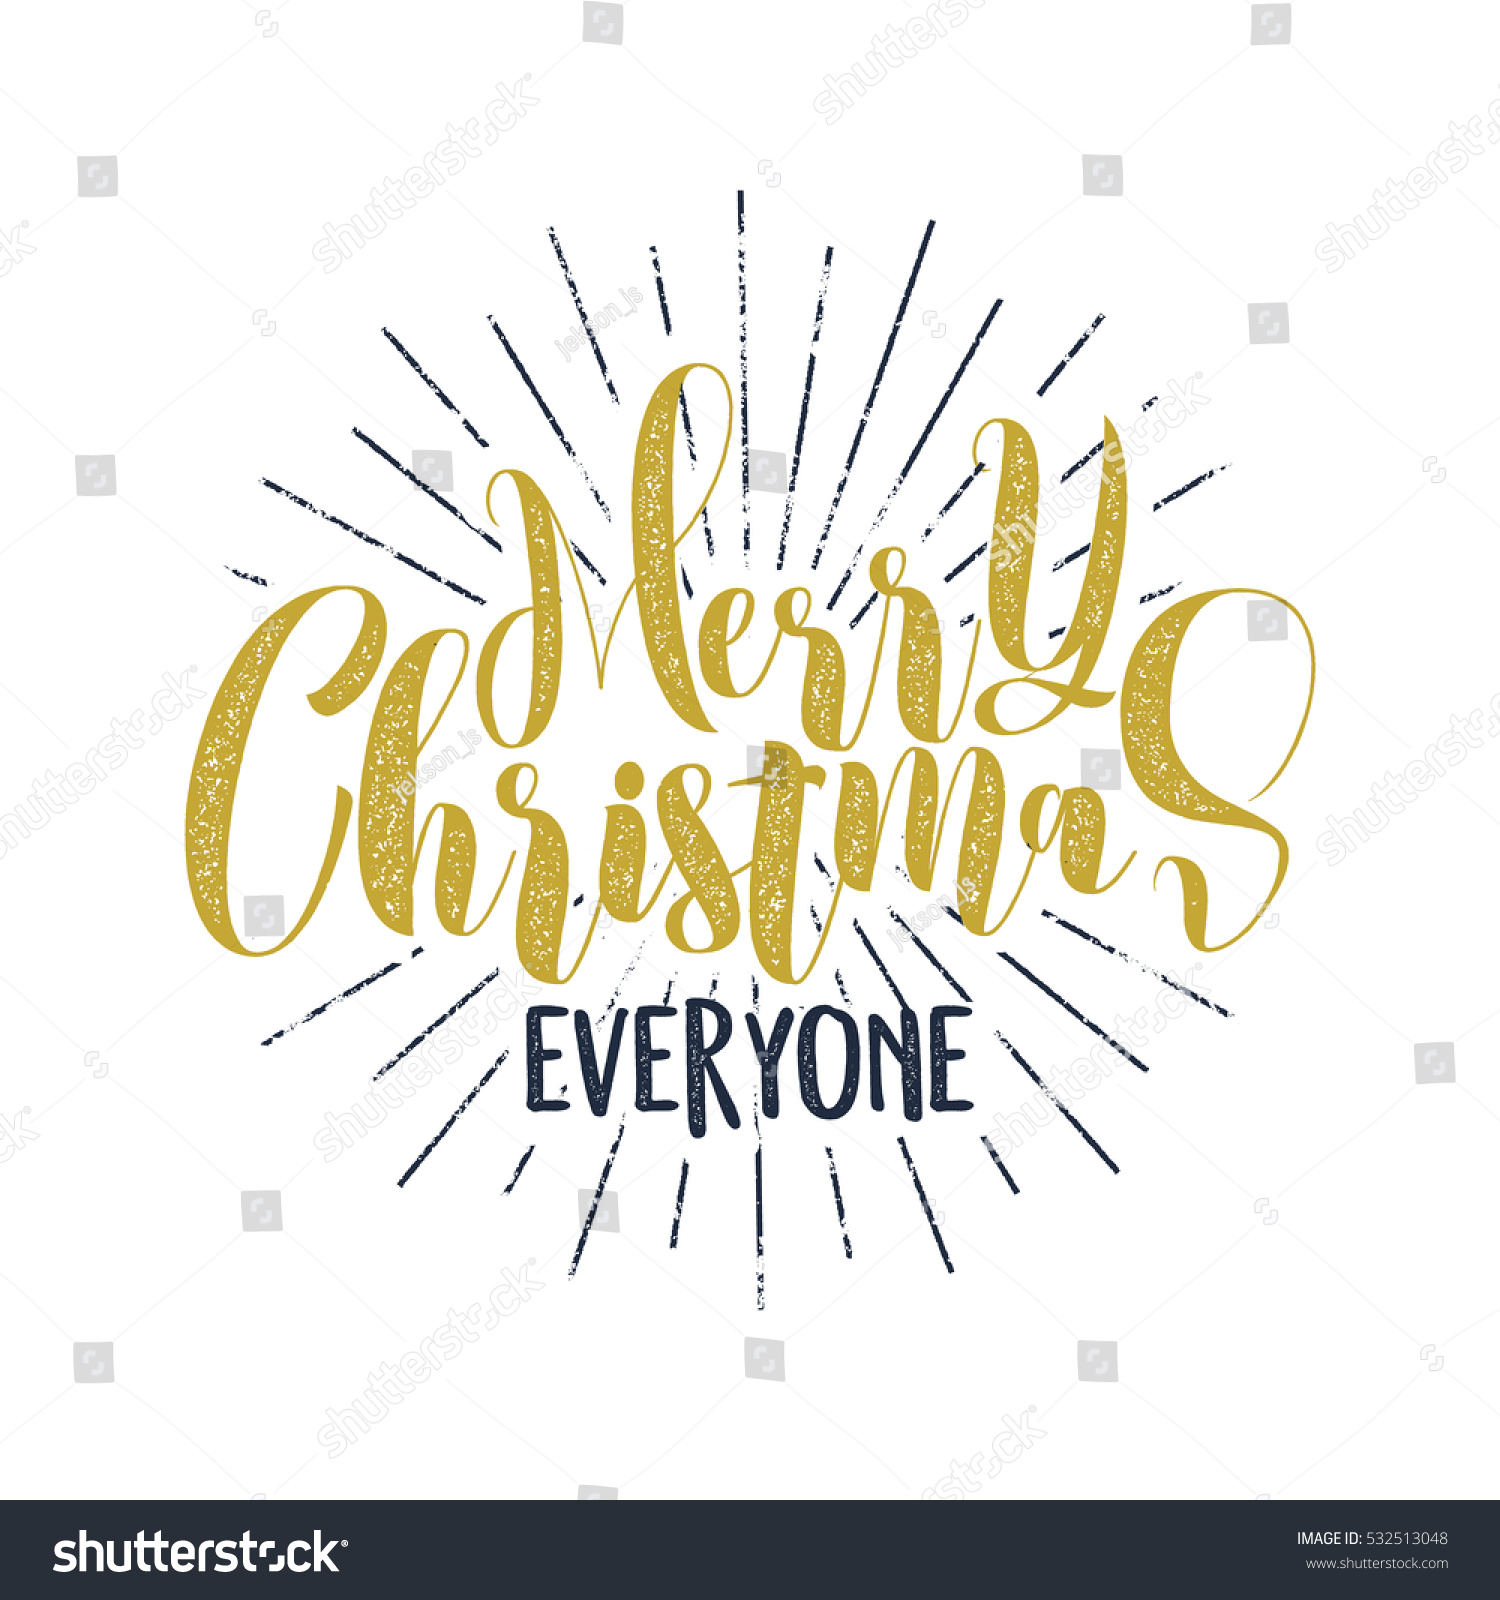 Merry Christmas Everyone Lettering Holiday Wish Stock